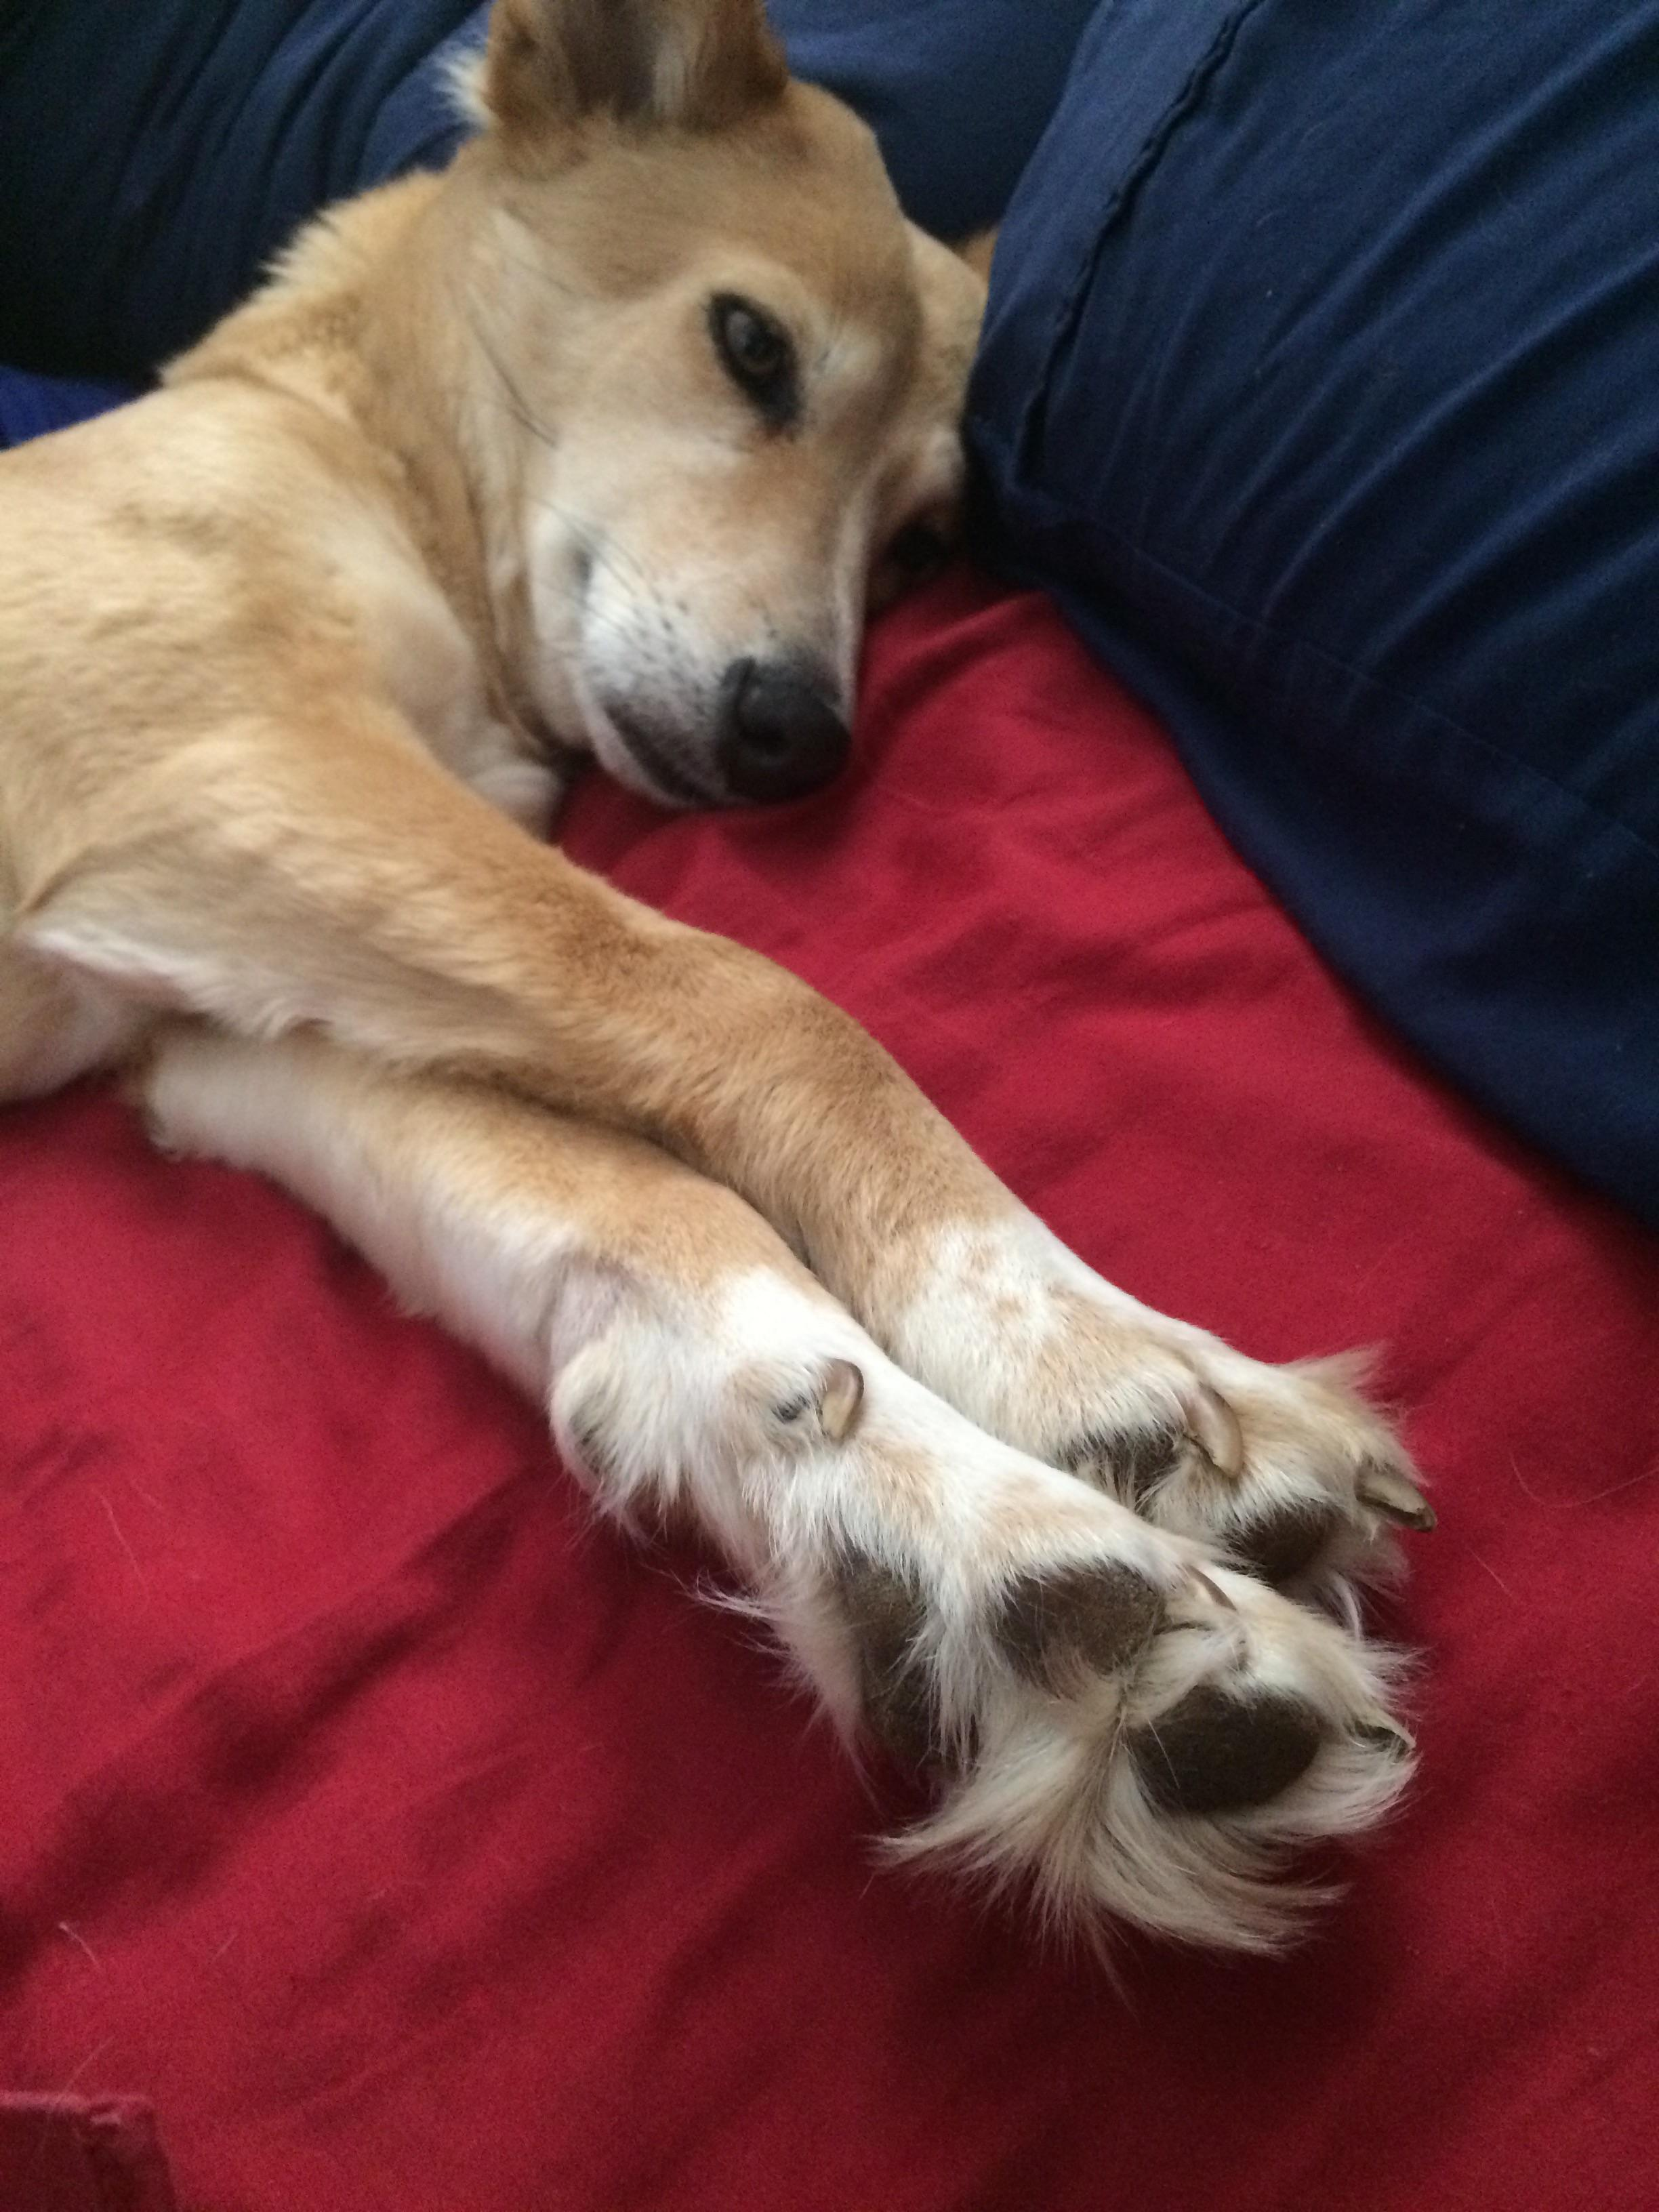 Sleek My Dog Has Really Long Fur Between Her My Dog Has Really Long Fur Between Her Doggos How Many Toes Does A Dog Have On Back Legs How Many Toes Does A Dog Have Quiz bark post How Many Toes Does A Dog Have